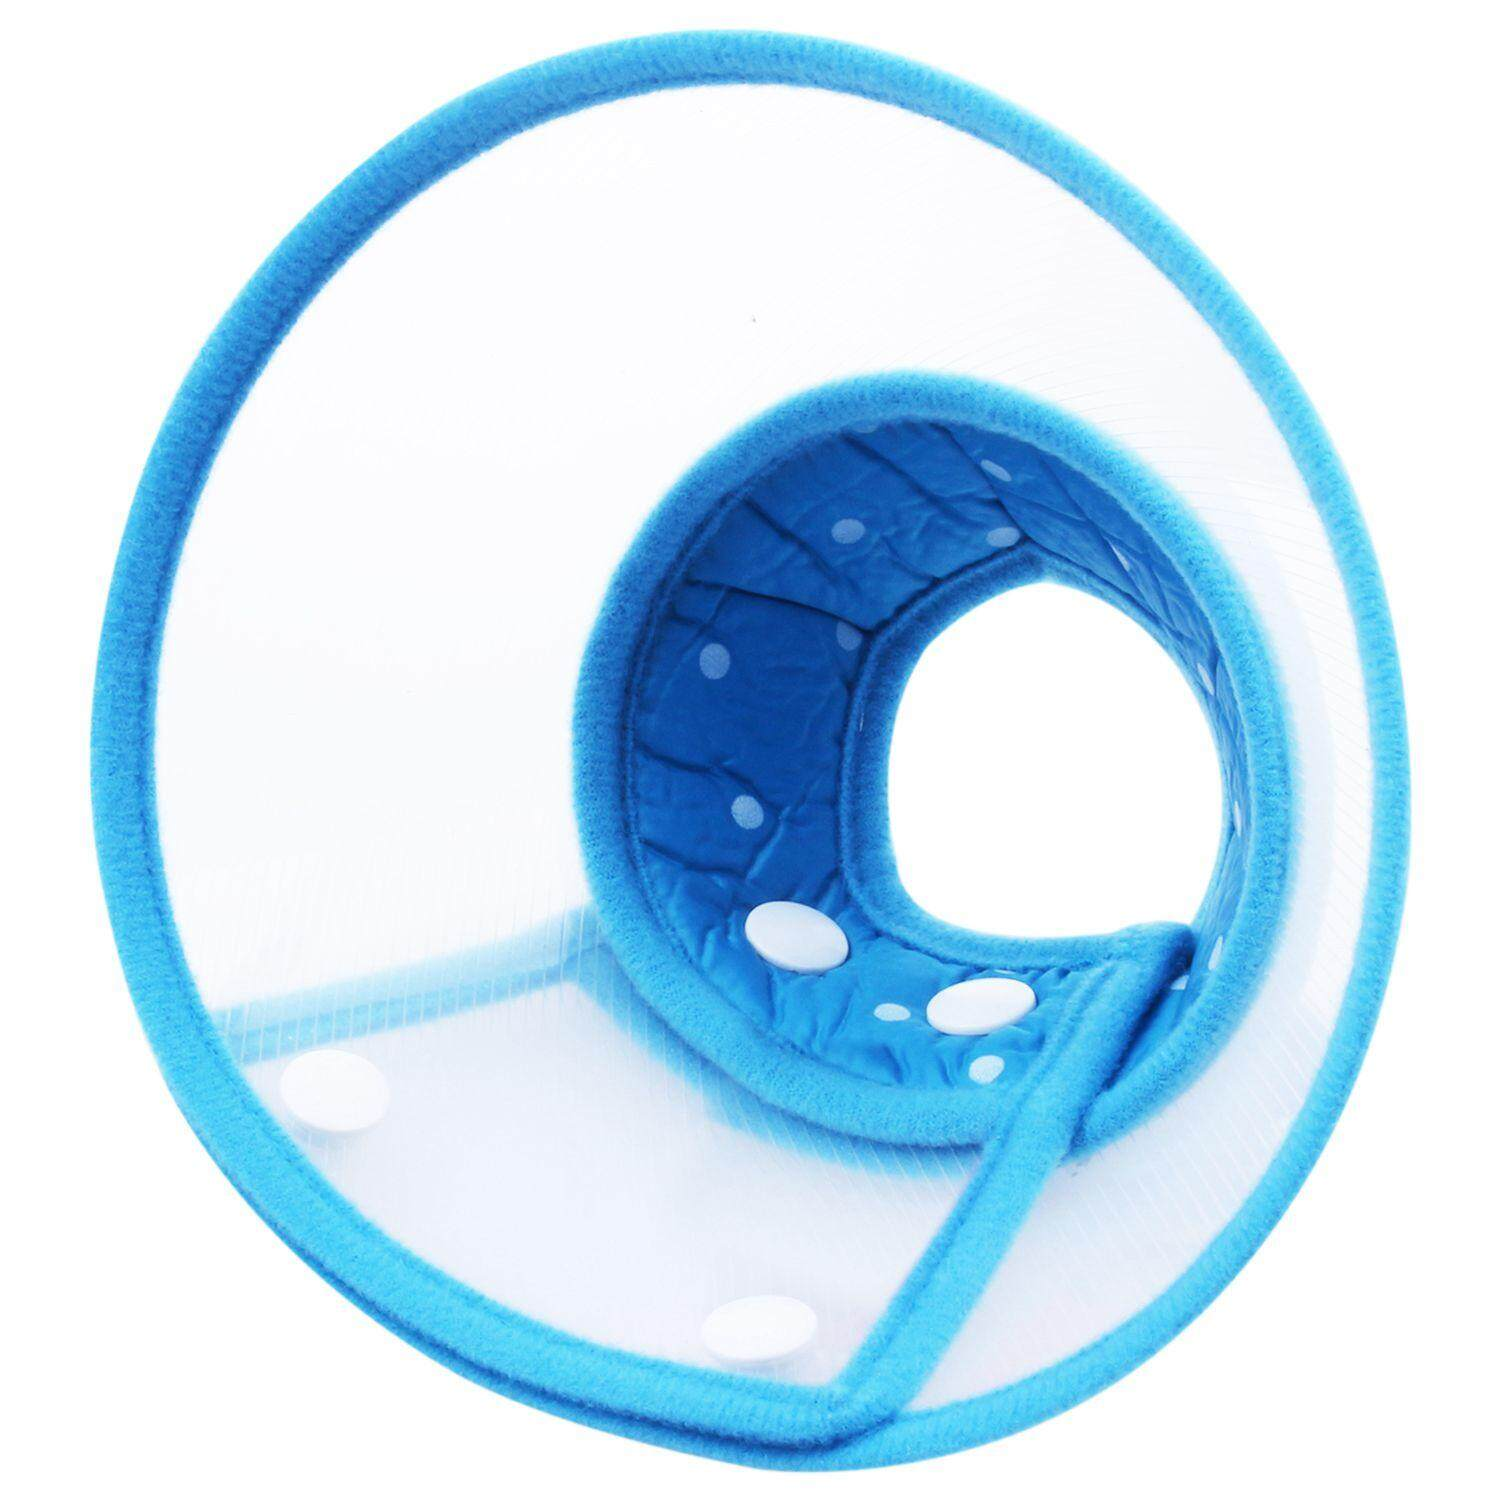 Dog Cat Elizabethan Non-Toxic Medical Wound Healing Cone Pet Anti Bite Collar, S, Blue By Yoyonow.